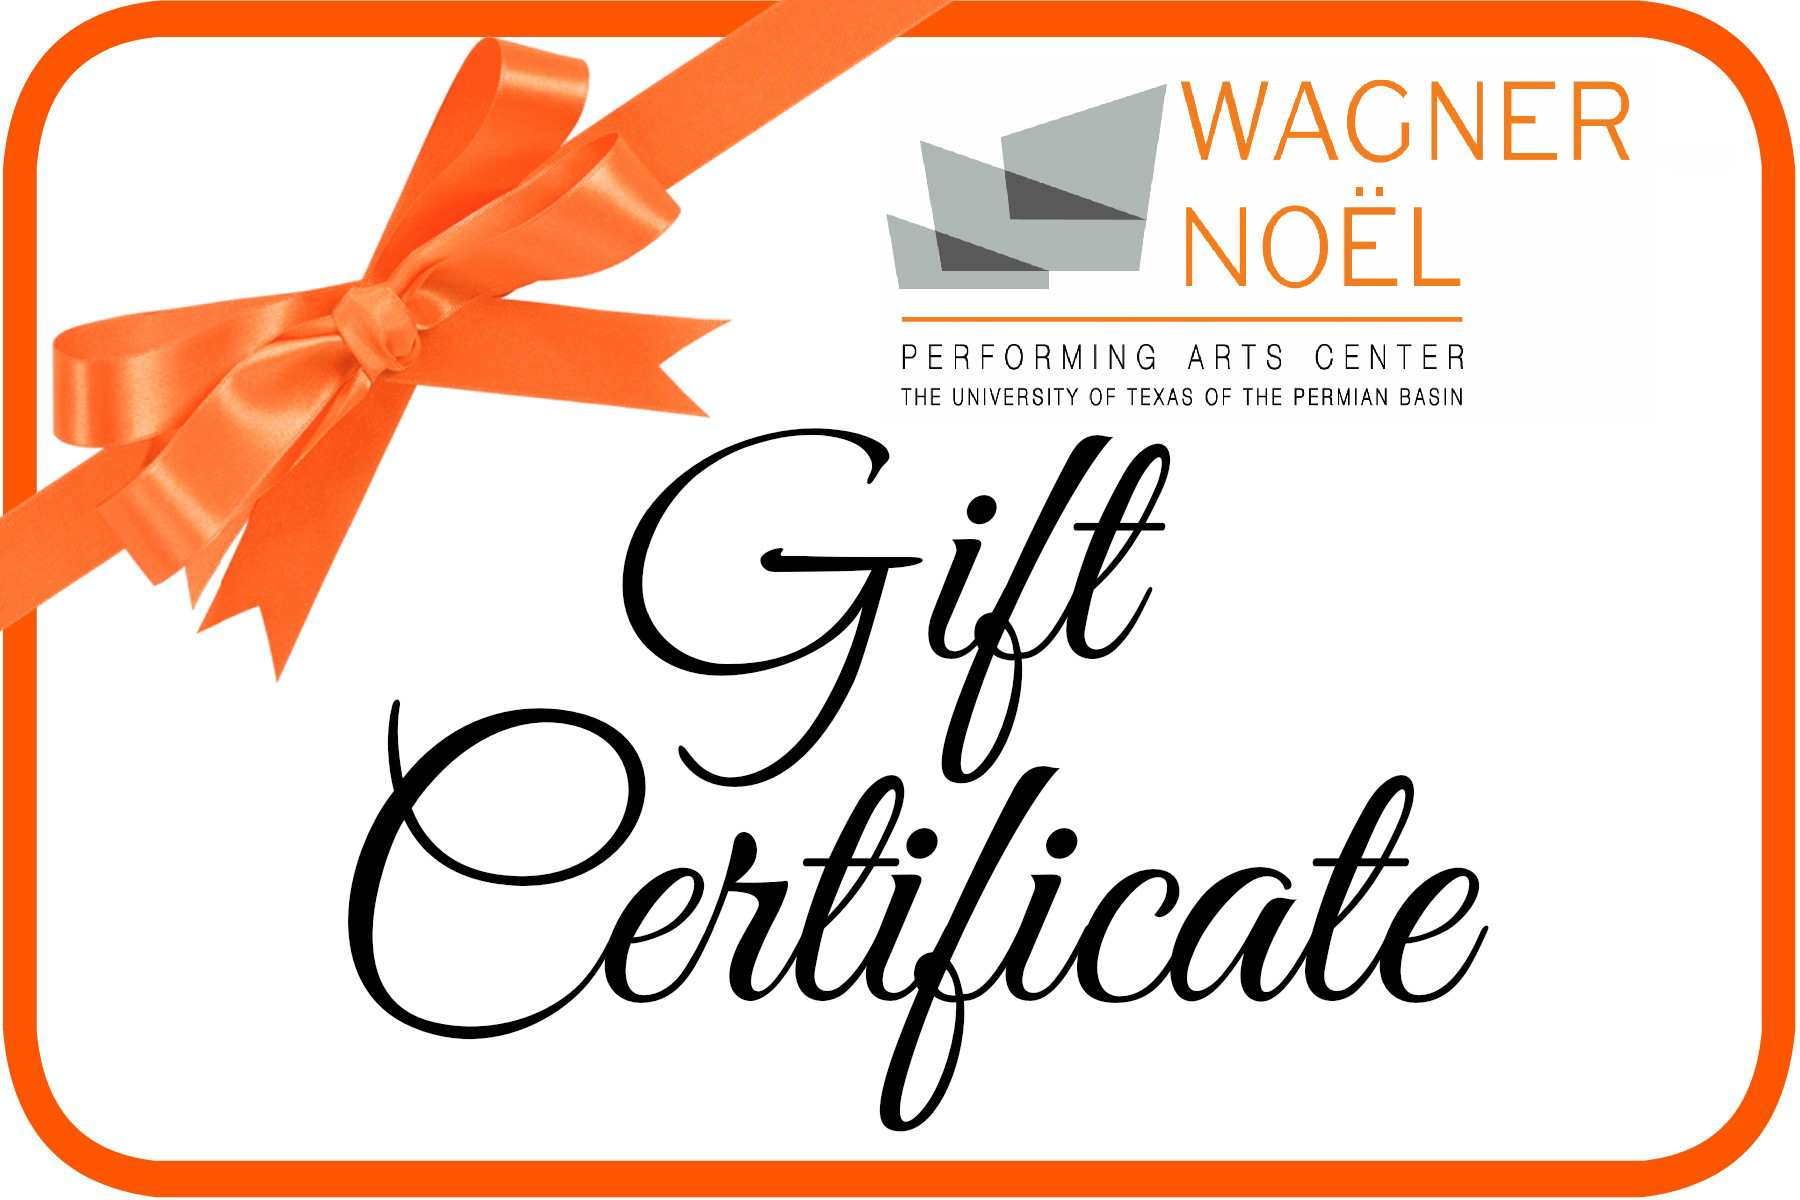 Image for Wagner Noël Gift Certificate - 2019